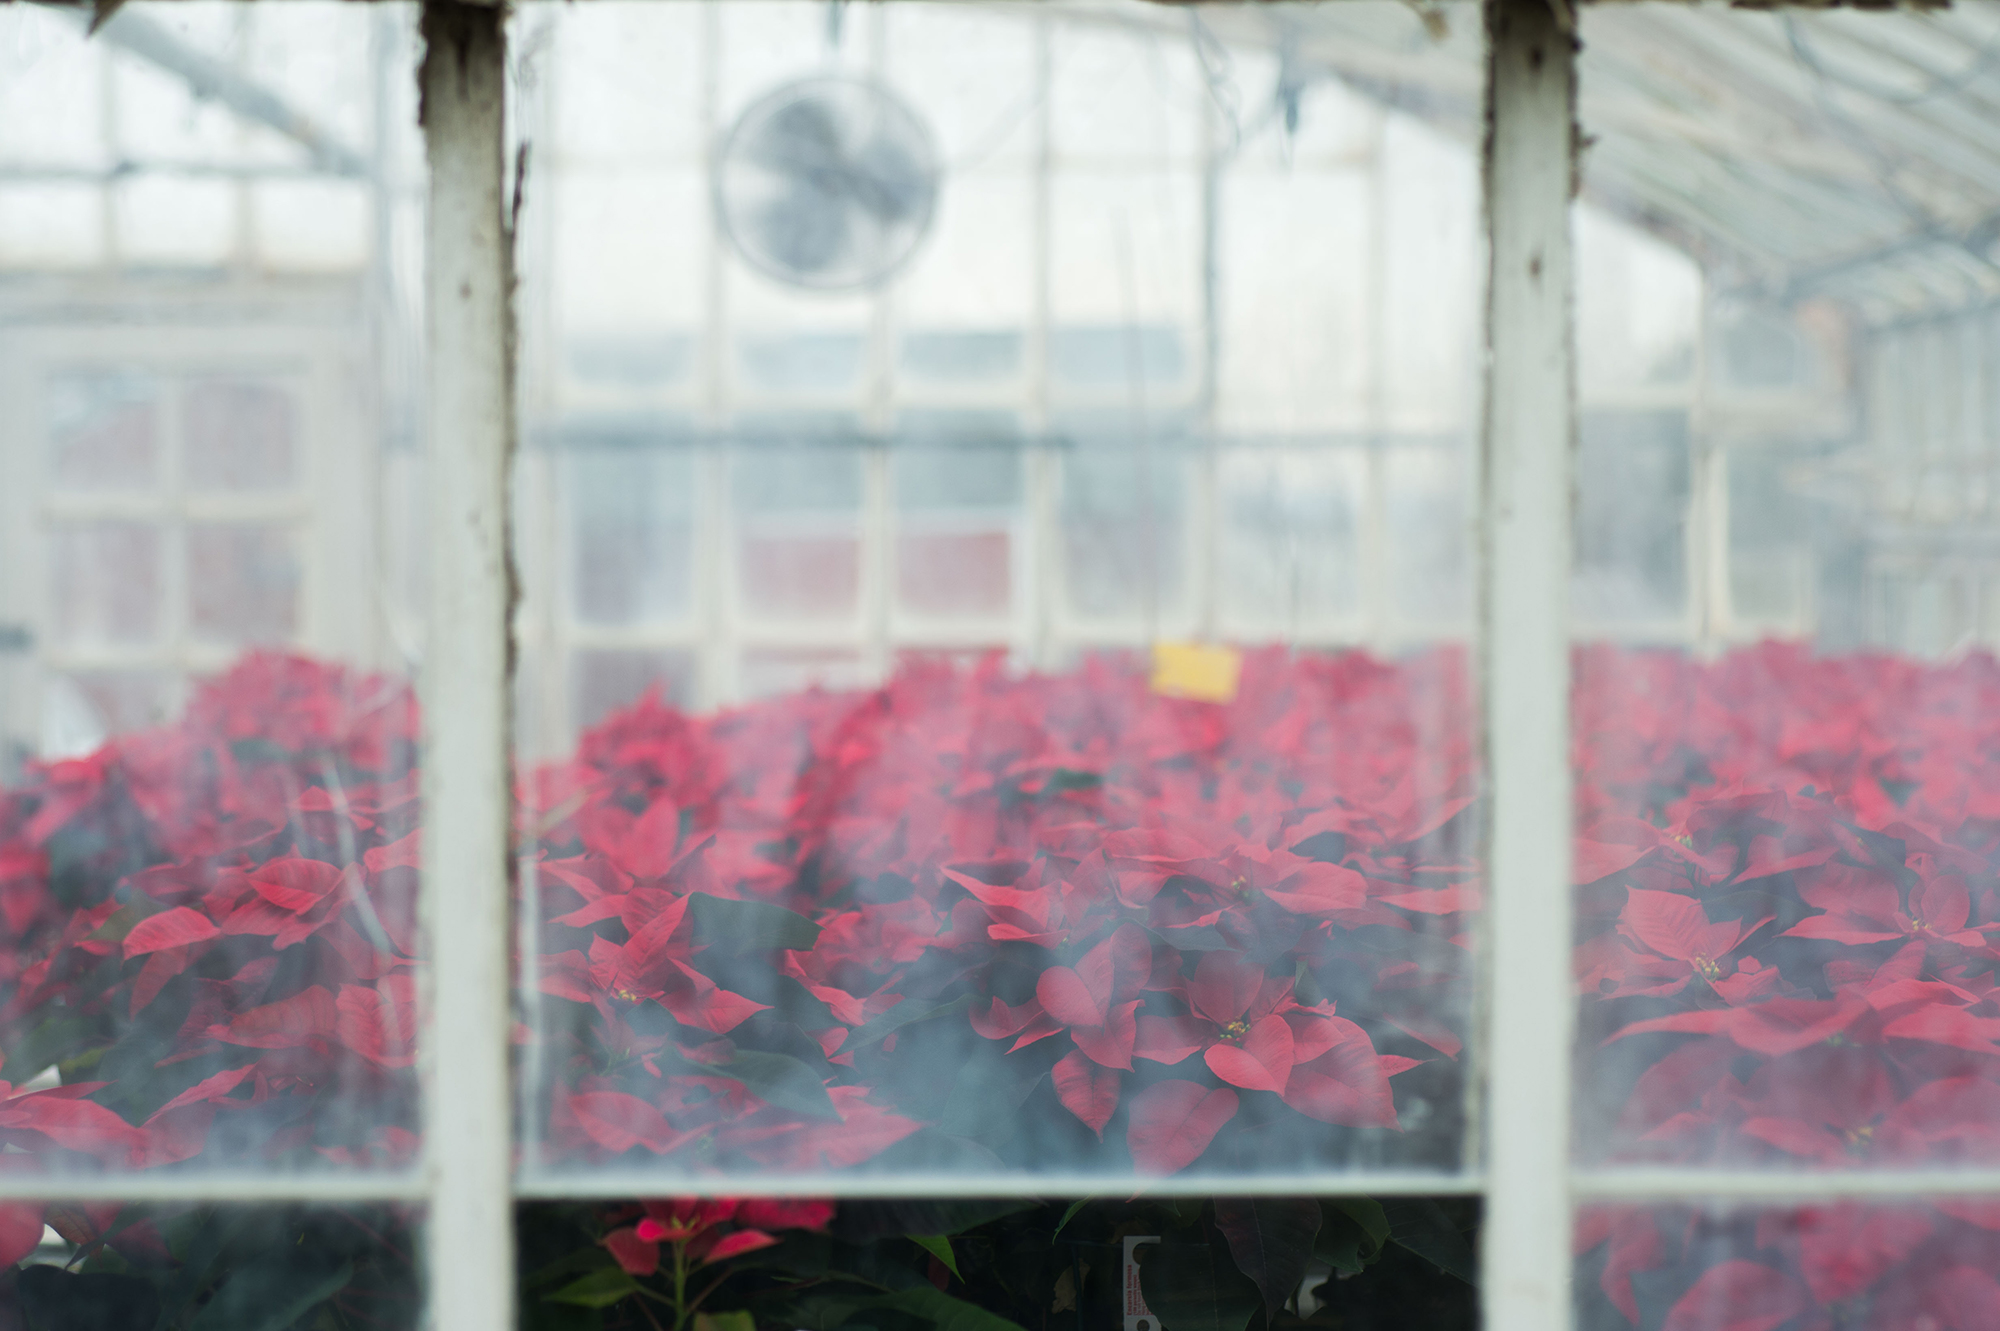 a cluster of poinsettias inside a greenhouse